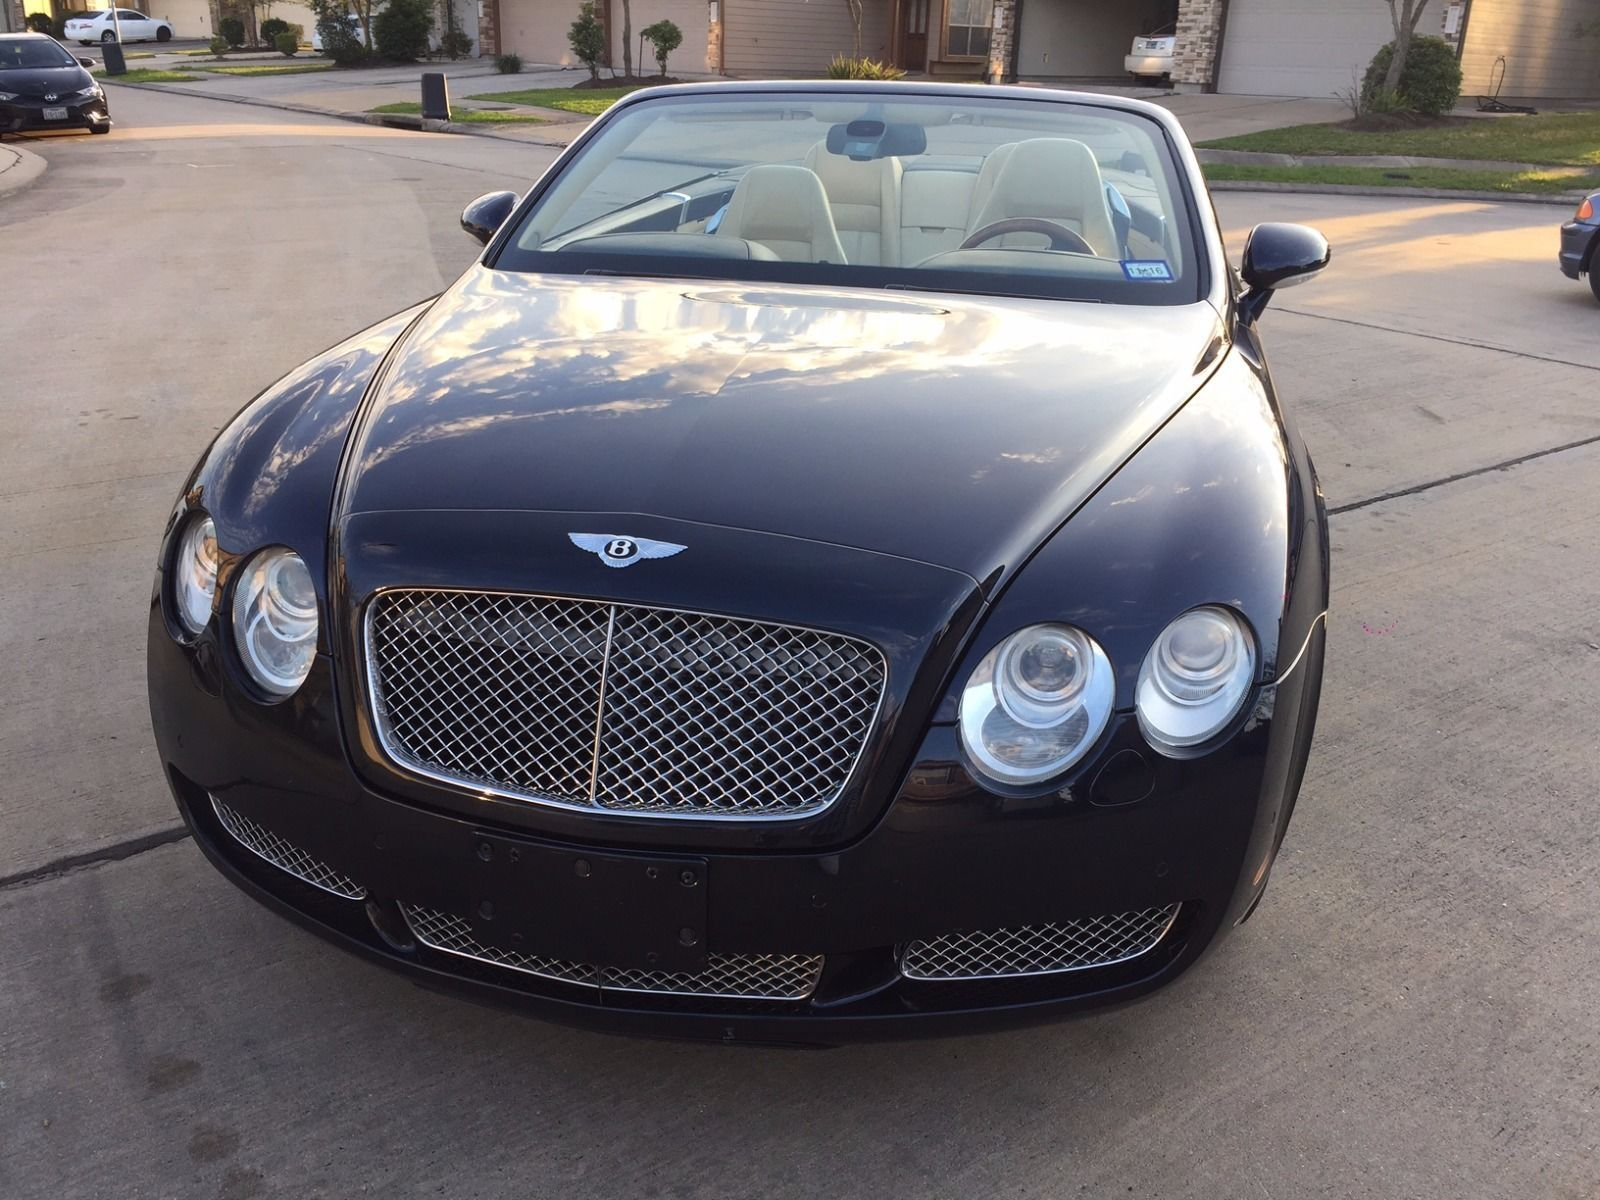 The 25 best 2007 bentley continental gt ideas on pinterest bentley continental gt convertible black bentley and bentley car